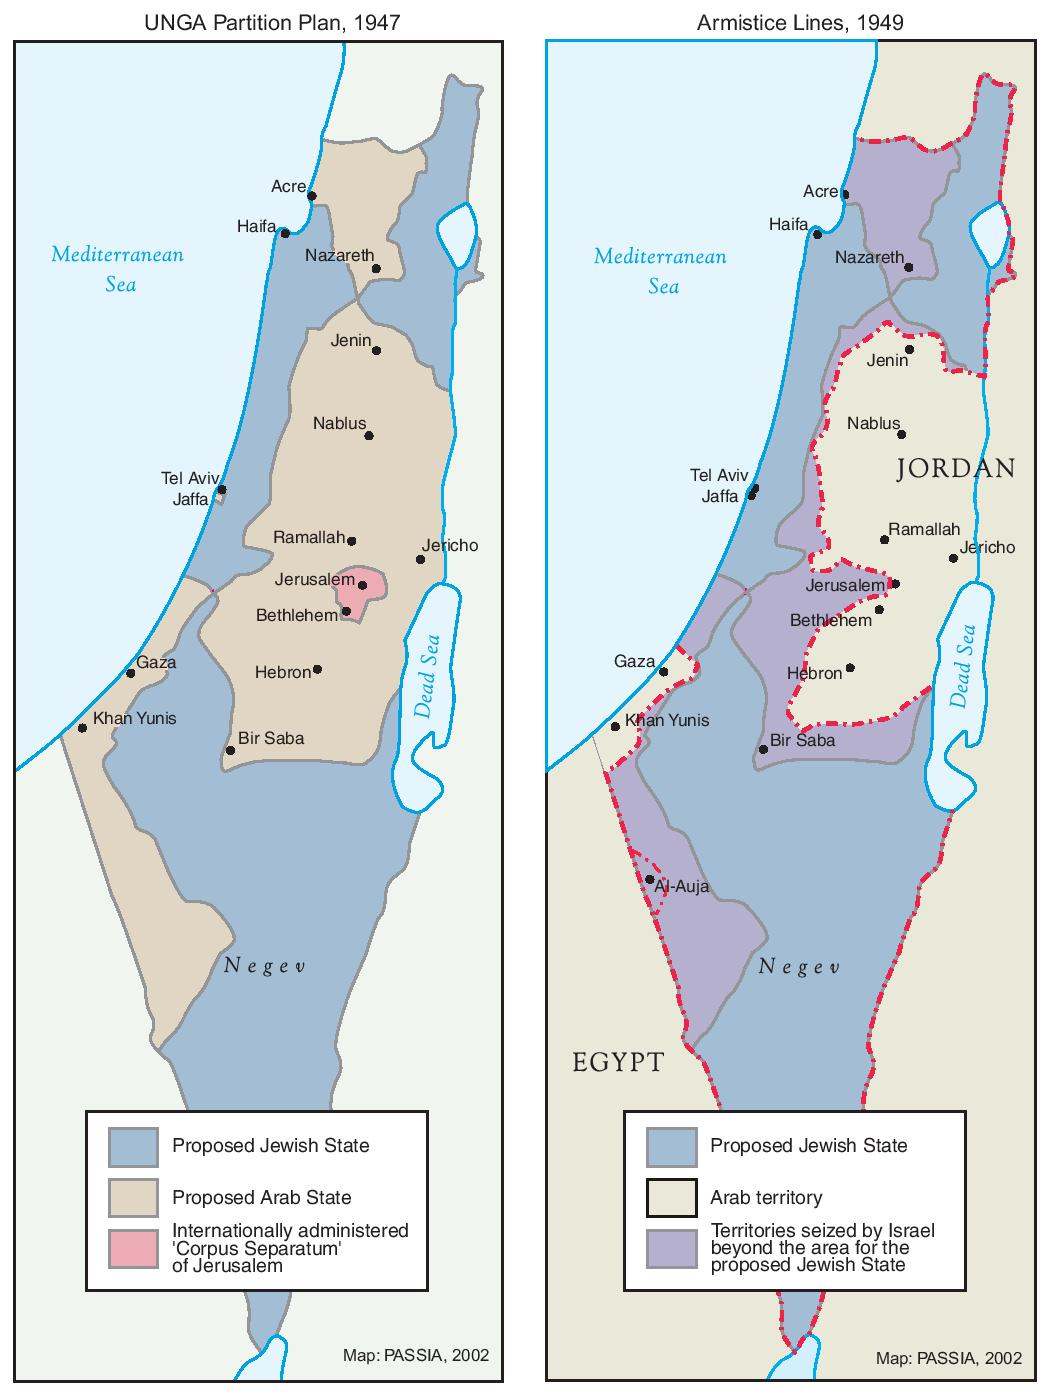 Map of the Partition and Armistice of Israel and Palestine